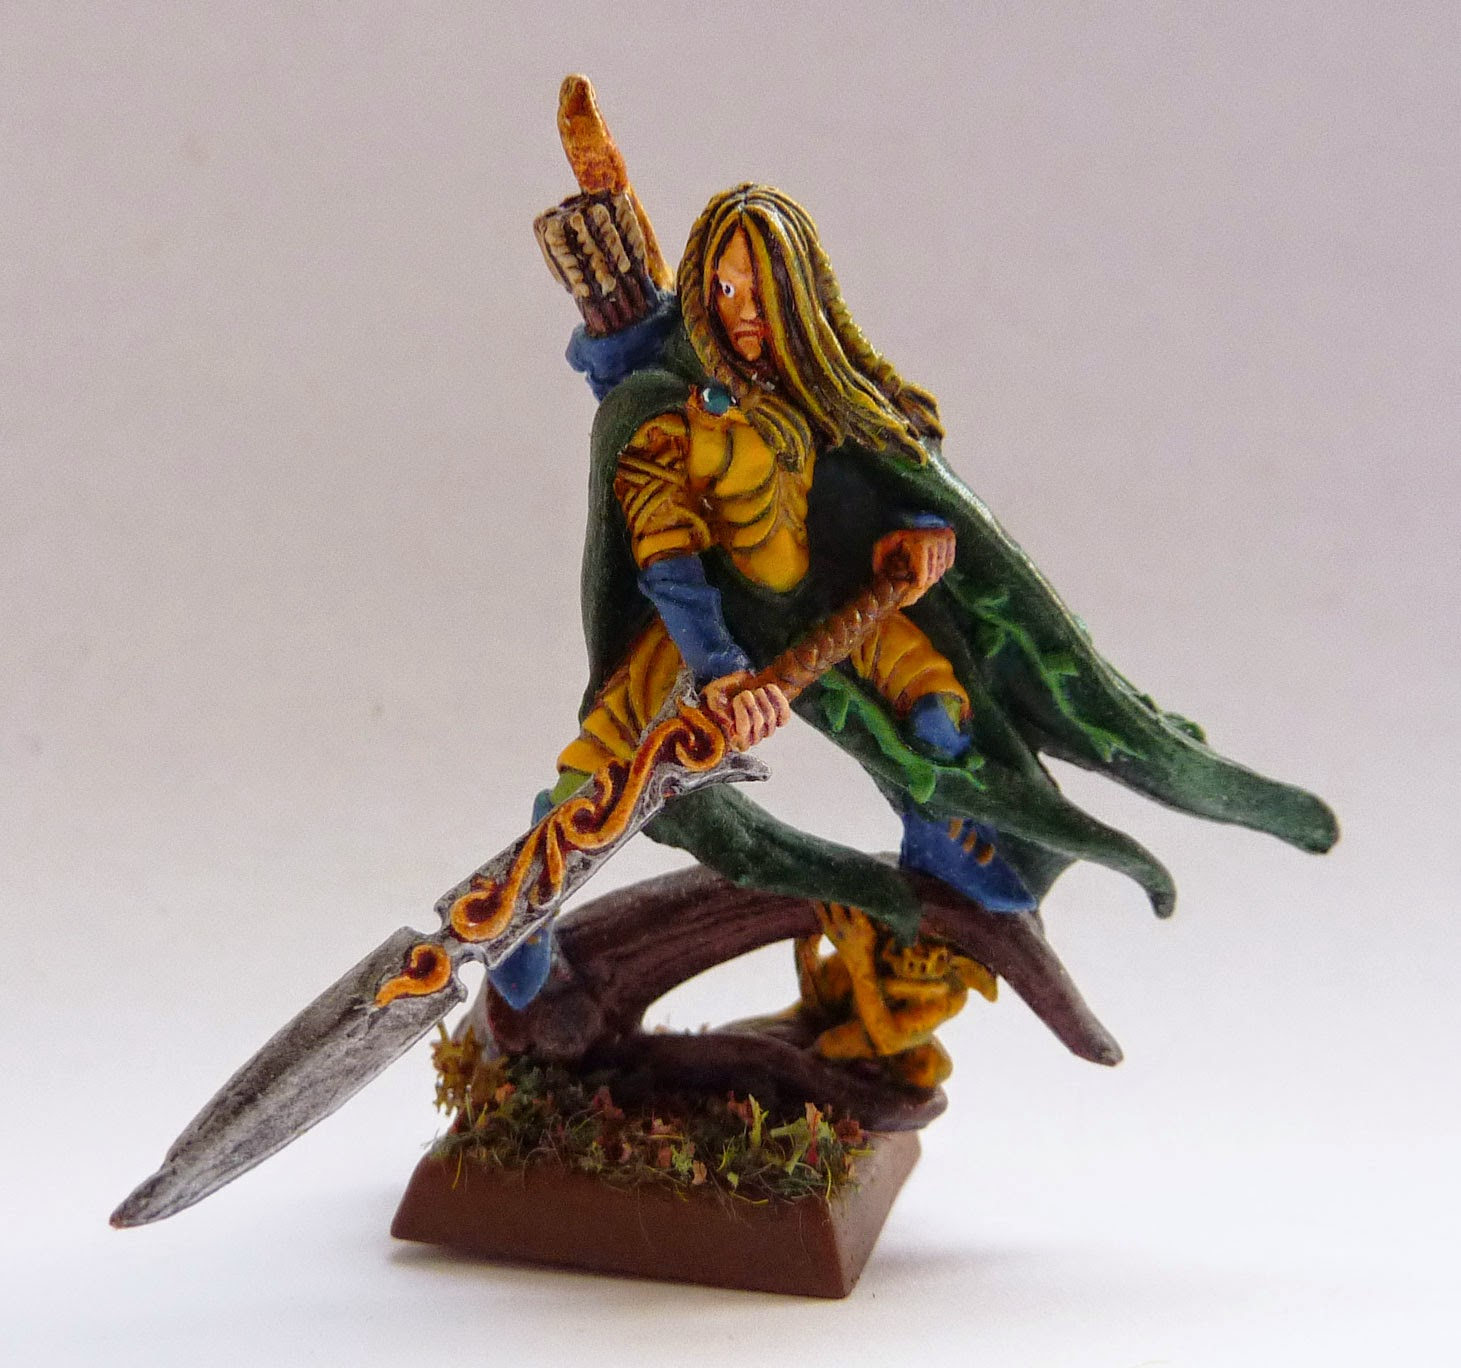 Warhammer Fantasy Battle - Wood Elf Glade Captain